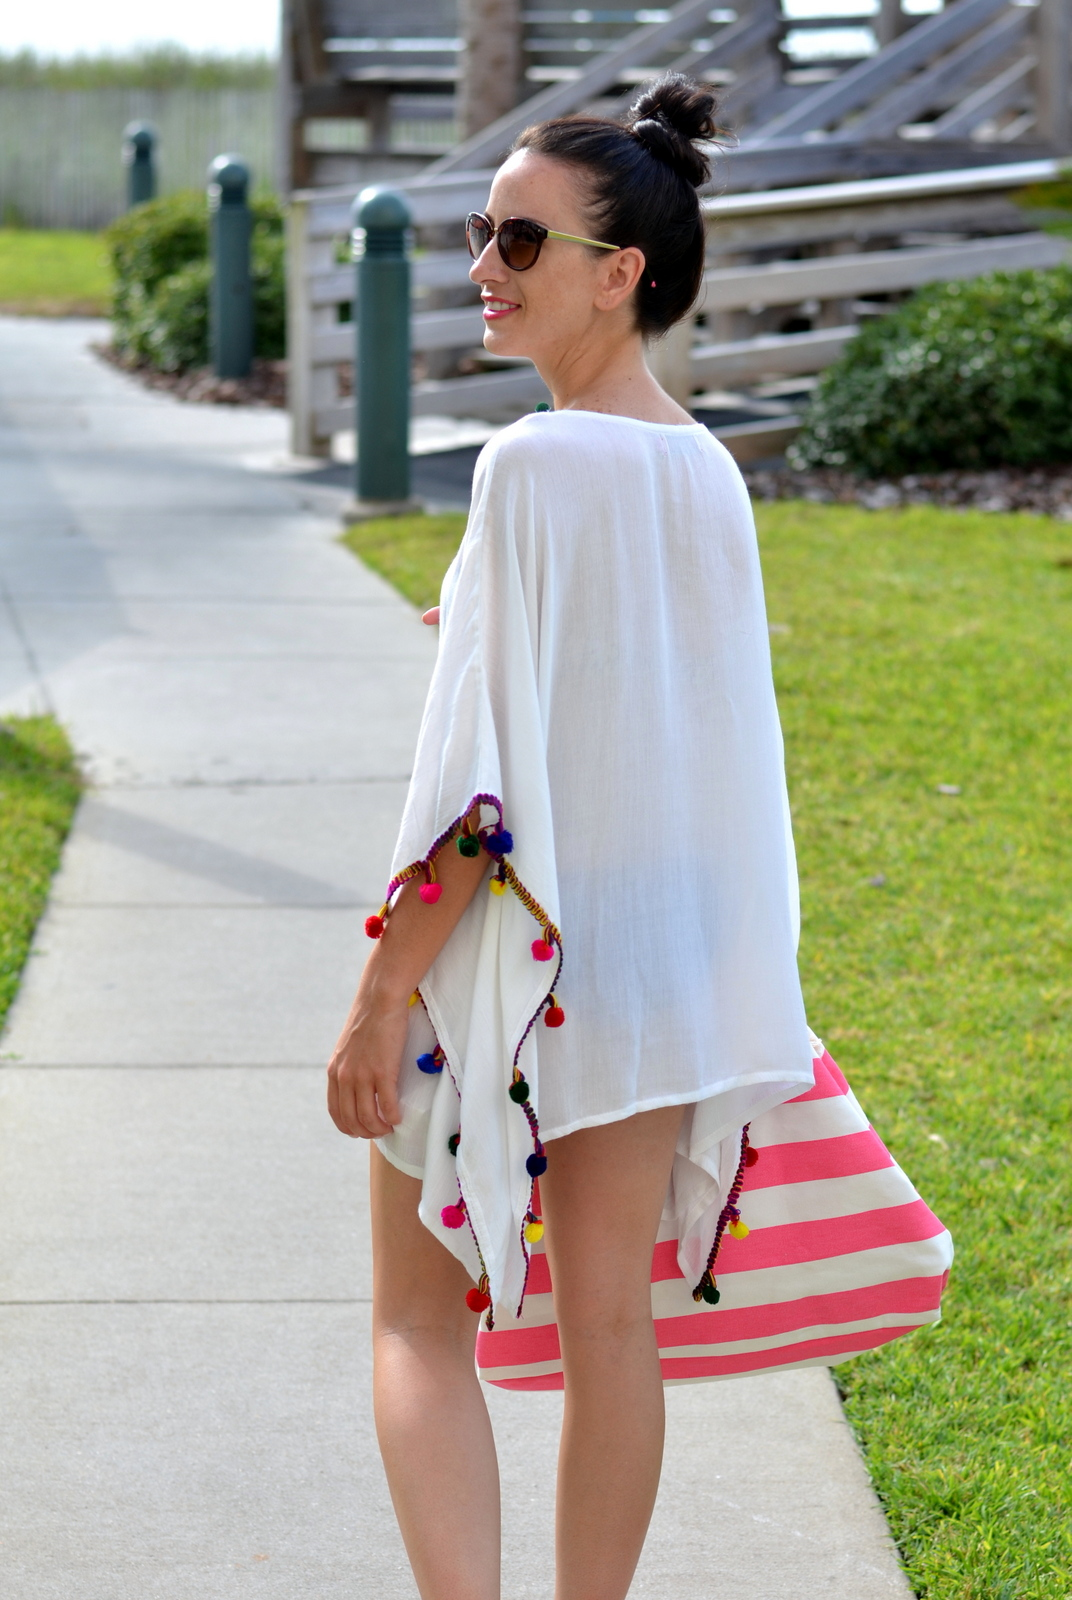 Boohoo White Beach coverup with Bright Pom Poms